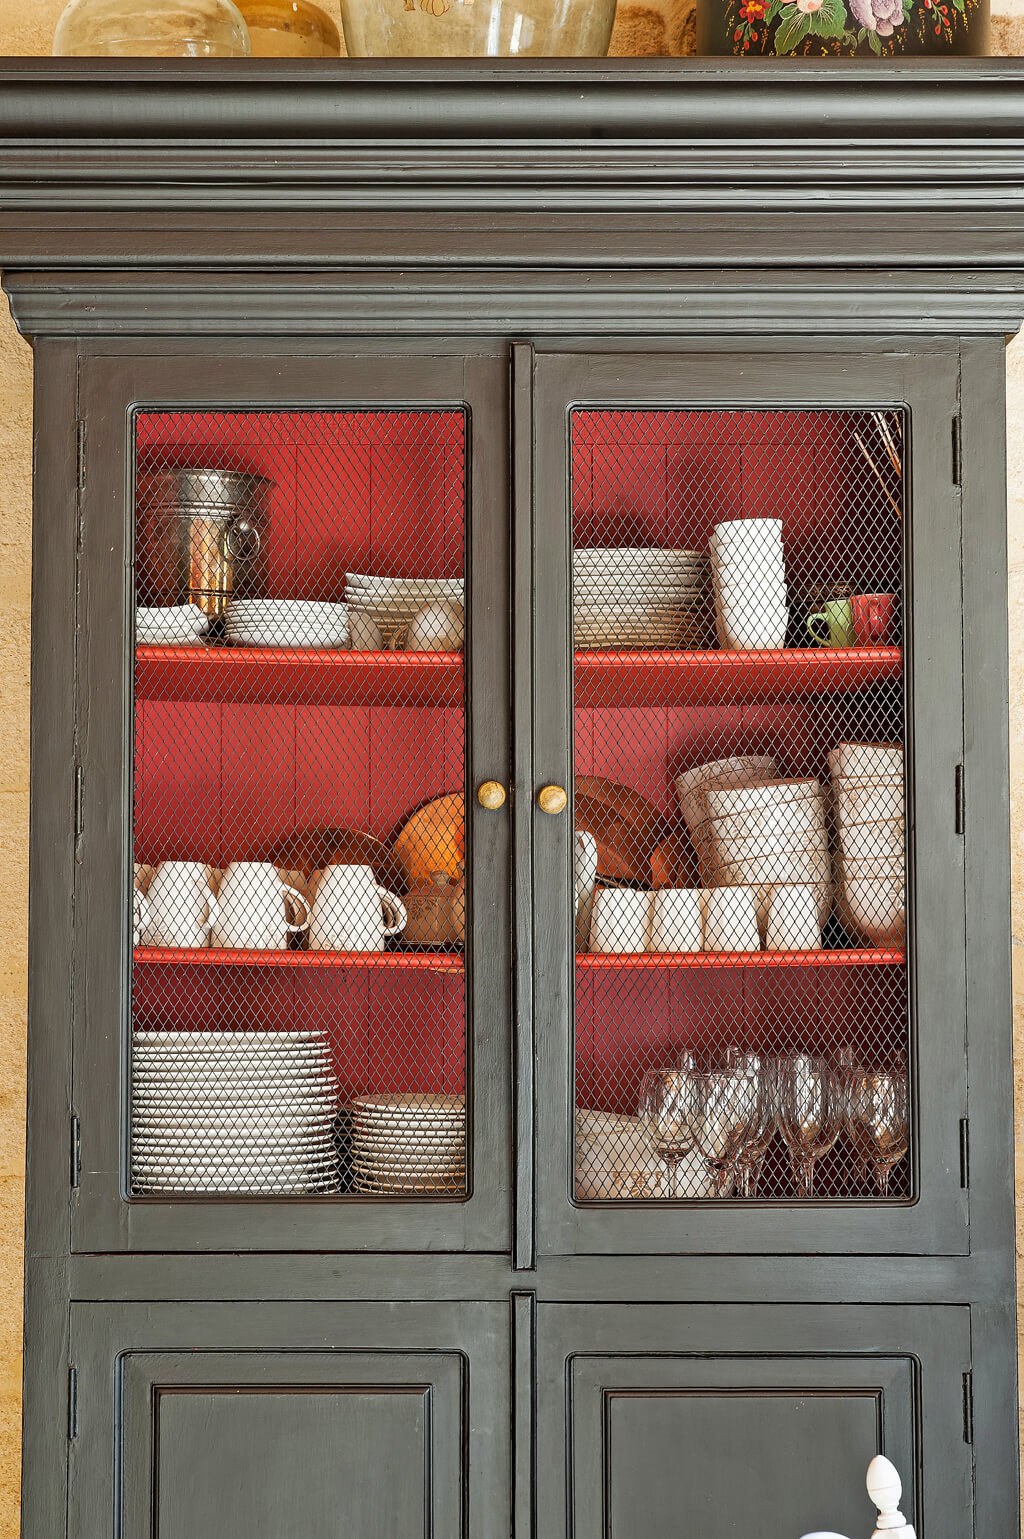 Charcoal grey French farmhouse cupboard with wire door inserts and red interior.